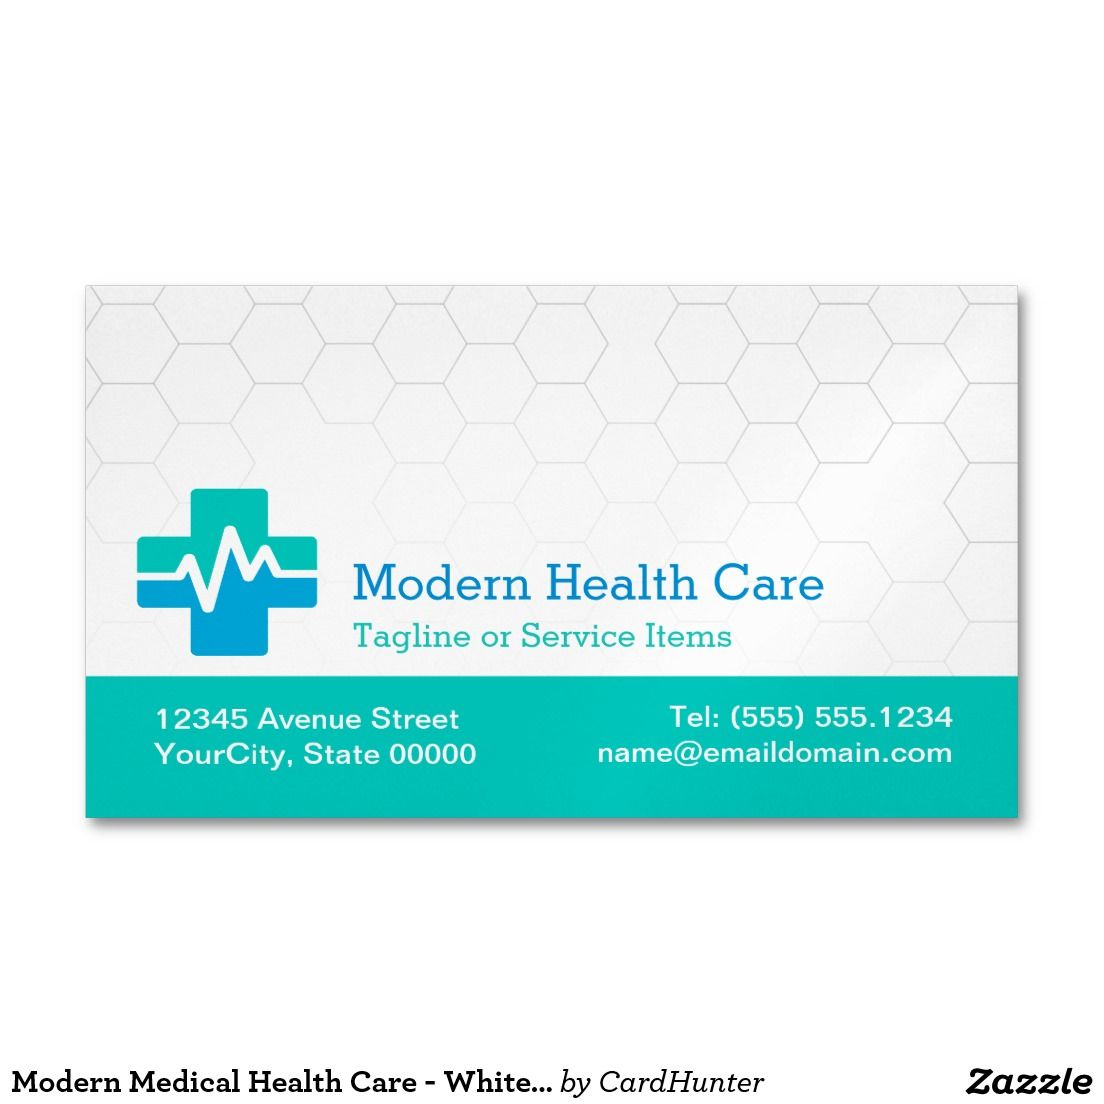 Blue Corporate Stationary Pack By Betty Design: Modern Medical Health Care